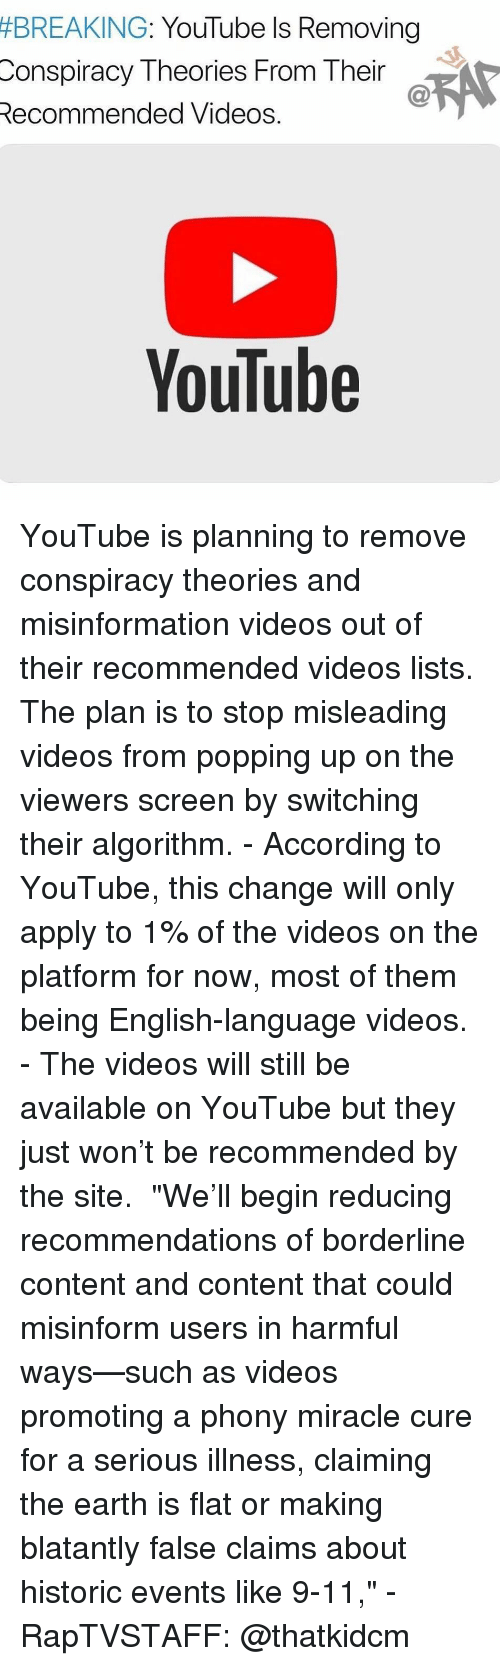 """misinformation:  #BREAKING  : YouTube Is Removing  Conspiracy Theories From Their  Recommended Videos.  YouTube YouTube is planning to remove conspiracy theories and misinformation videos out of their recommended videos lists. The plan is to stop misleading videos from popping up on the viewers screen by switching their algorithm. - According to YouTube, this change will only apply to 1% of the videos on the platform for now, most of them being English-language videos. - The videos will still be available on YouTube but they just won't be recommended by the site.  """"We'll begin reducing recommendations of borderline content and content that could misinform users in harmful ways—such as videos promoting a phony miracle cure for a serious illness, claiming the earth is flat or making blatantly false claims about historic events like 9-11,"""" - RapTVSTAFF: @thatkidcm"""